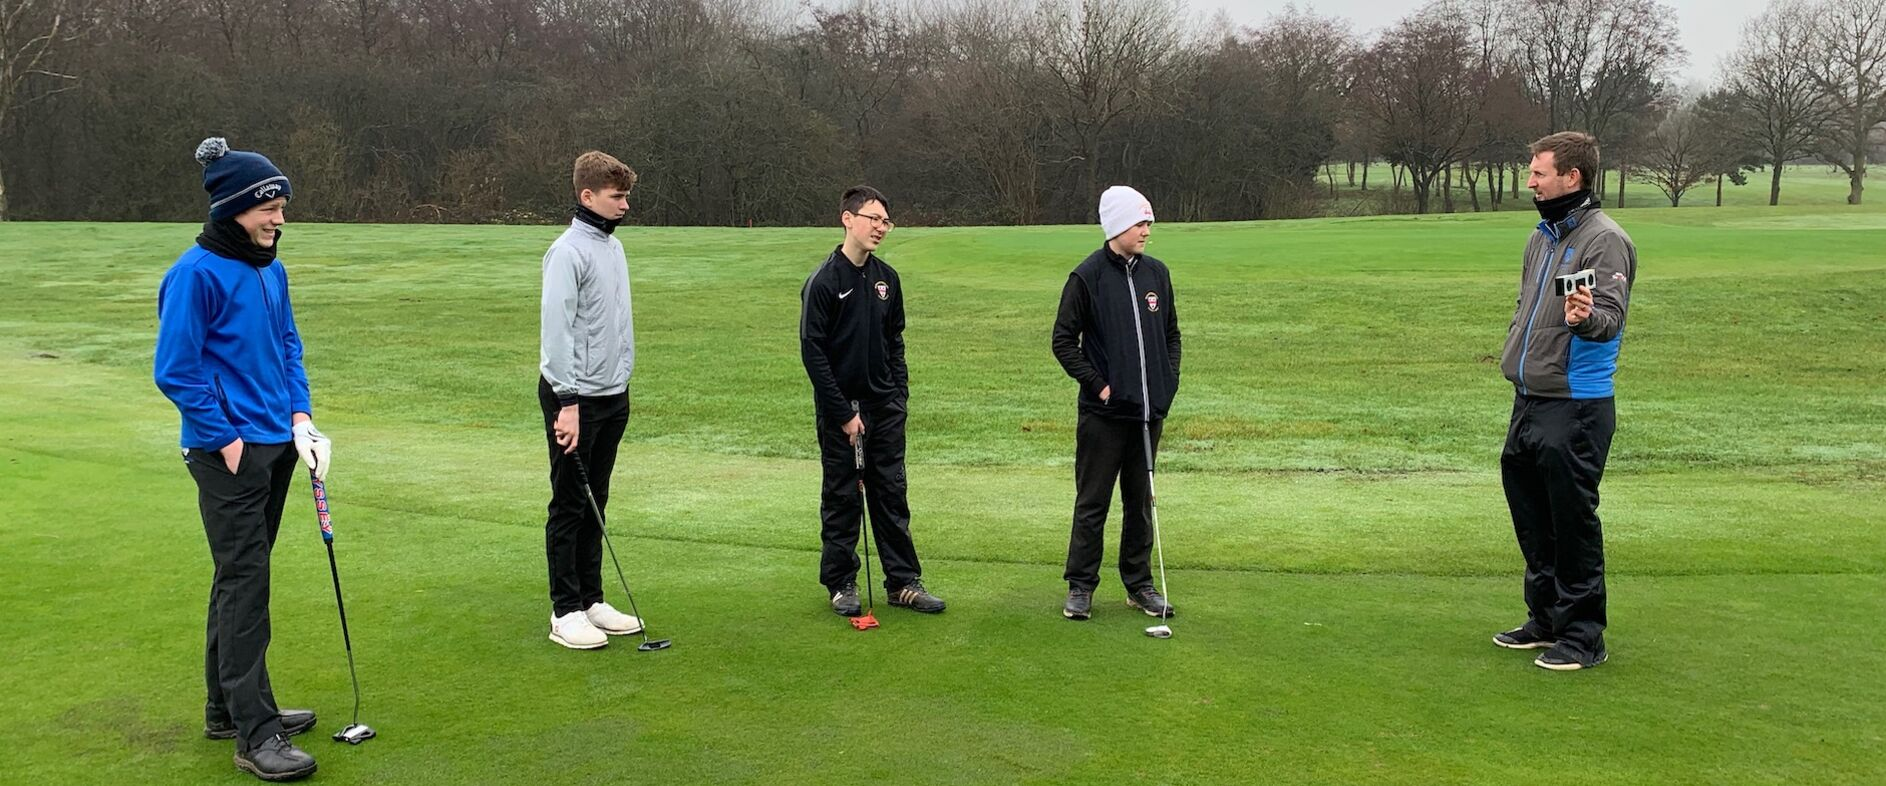 A final County Boys Group Coaching session at Hagley GC 21.12.20 before lockdown